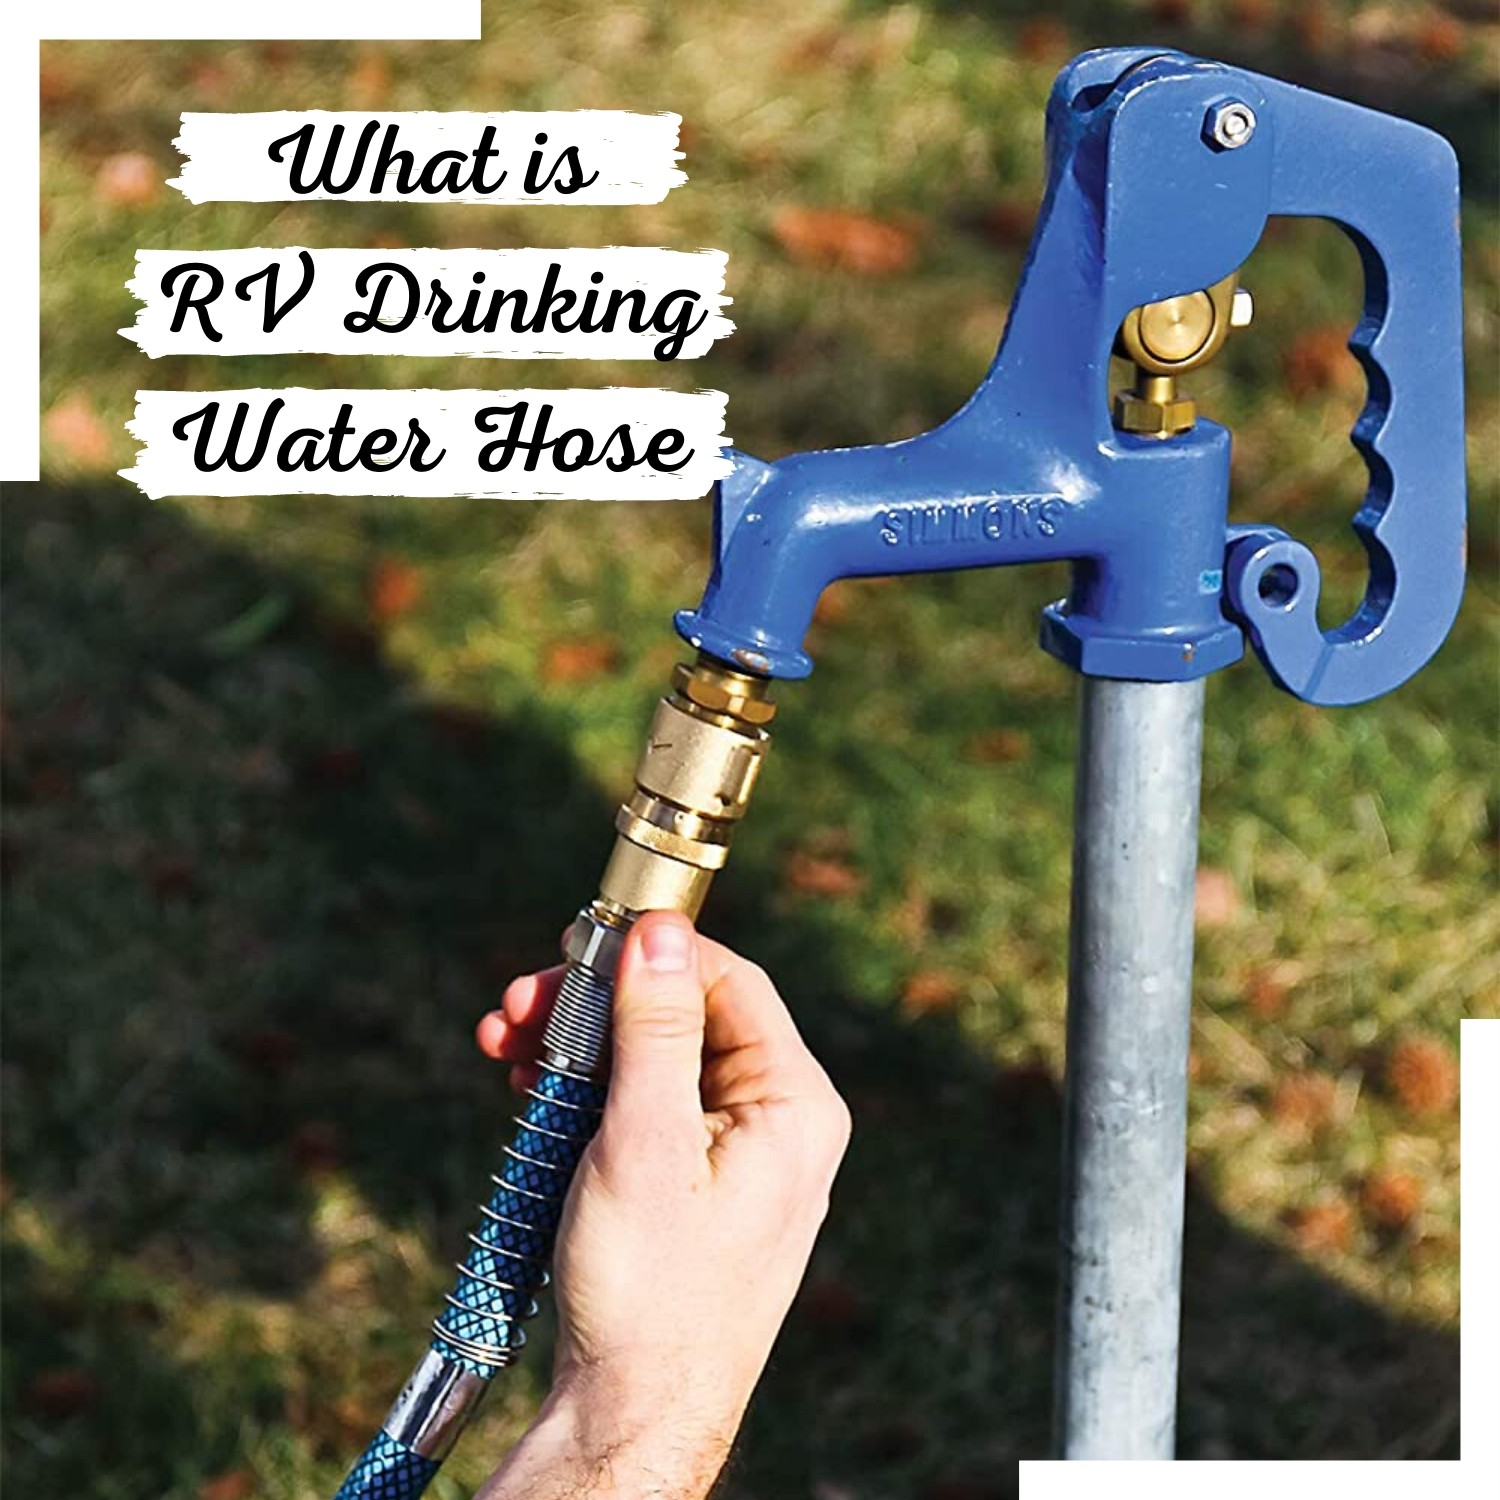 What is RV drinking water hose